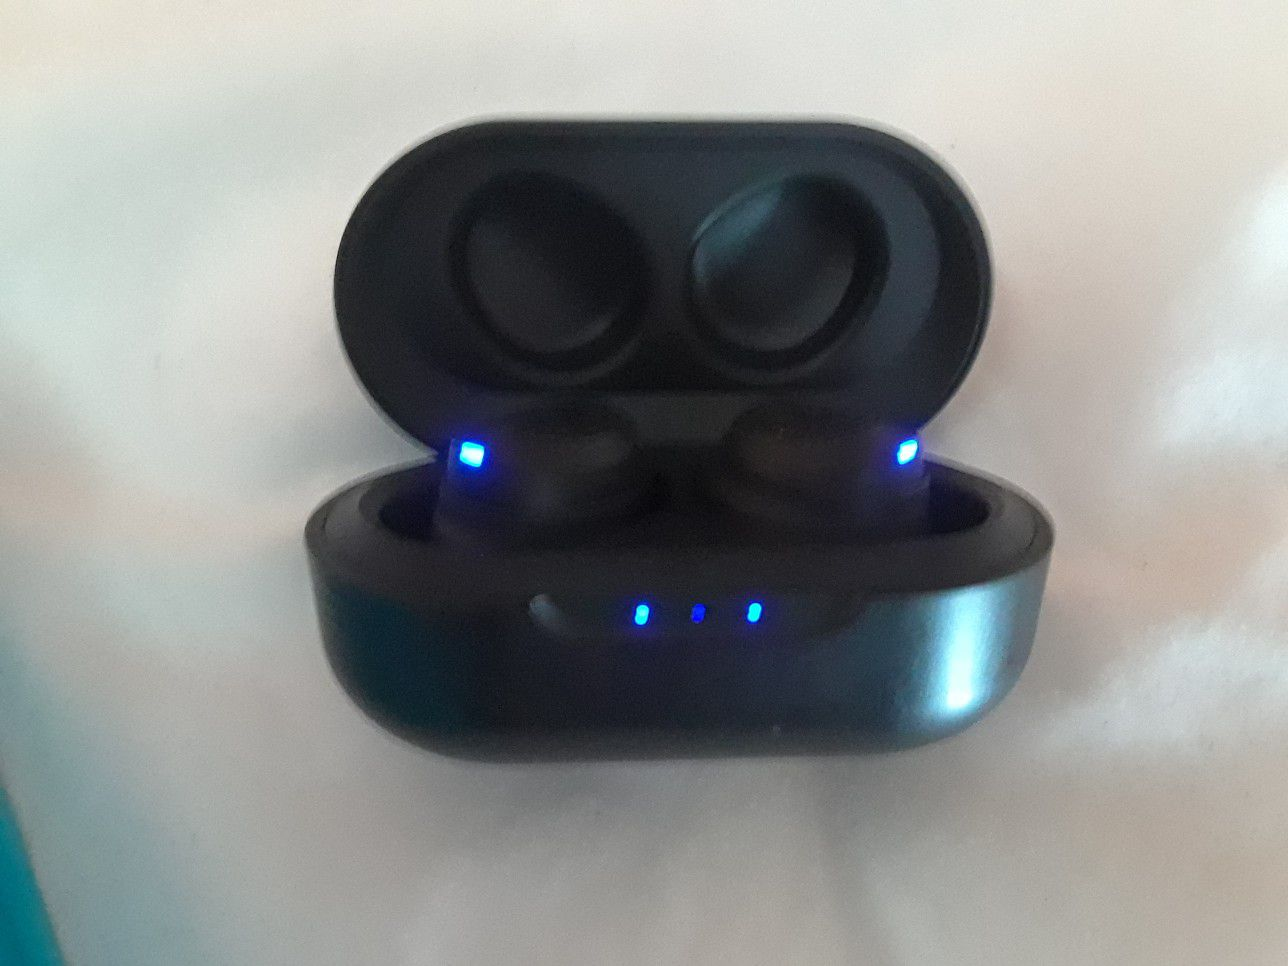 Jbuds air true wireless signature ear buds 14+hours of play time